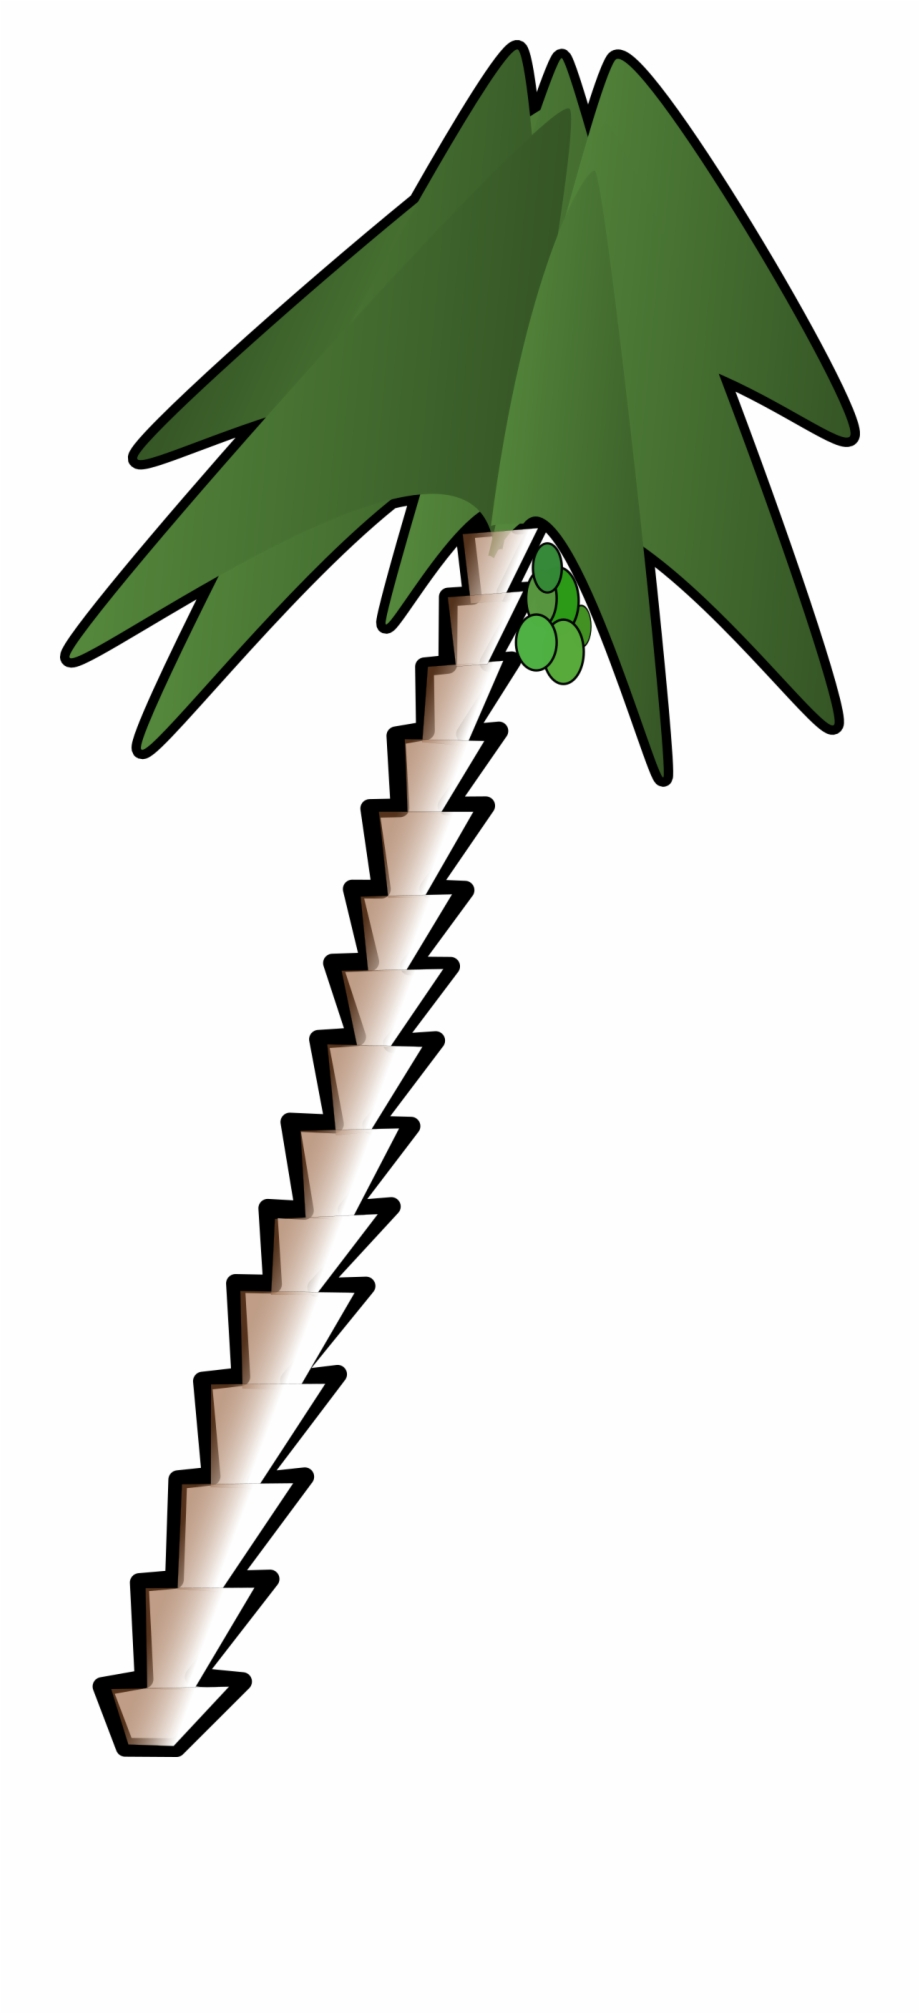 This Free Icons Png Design Of Leaning Palm Tree.